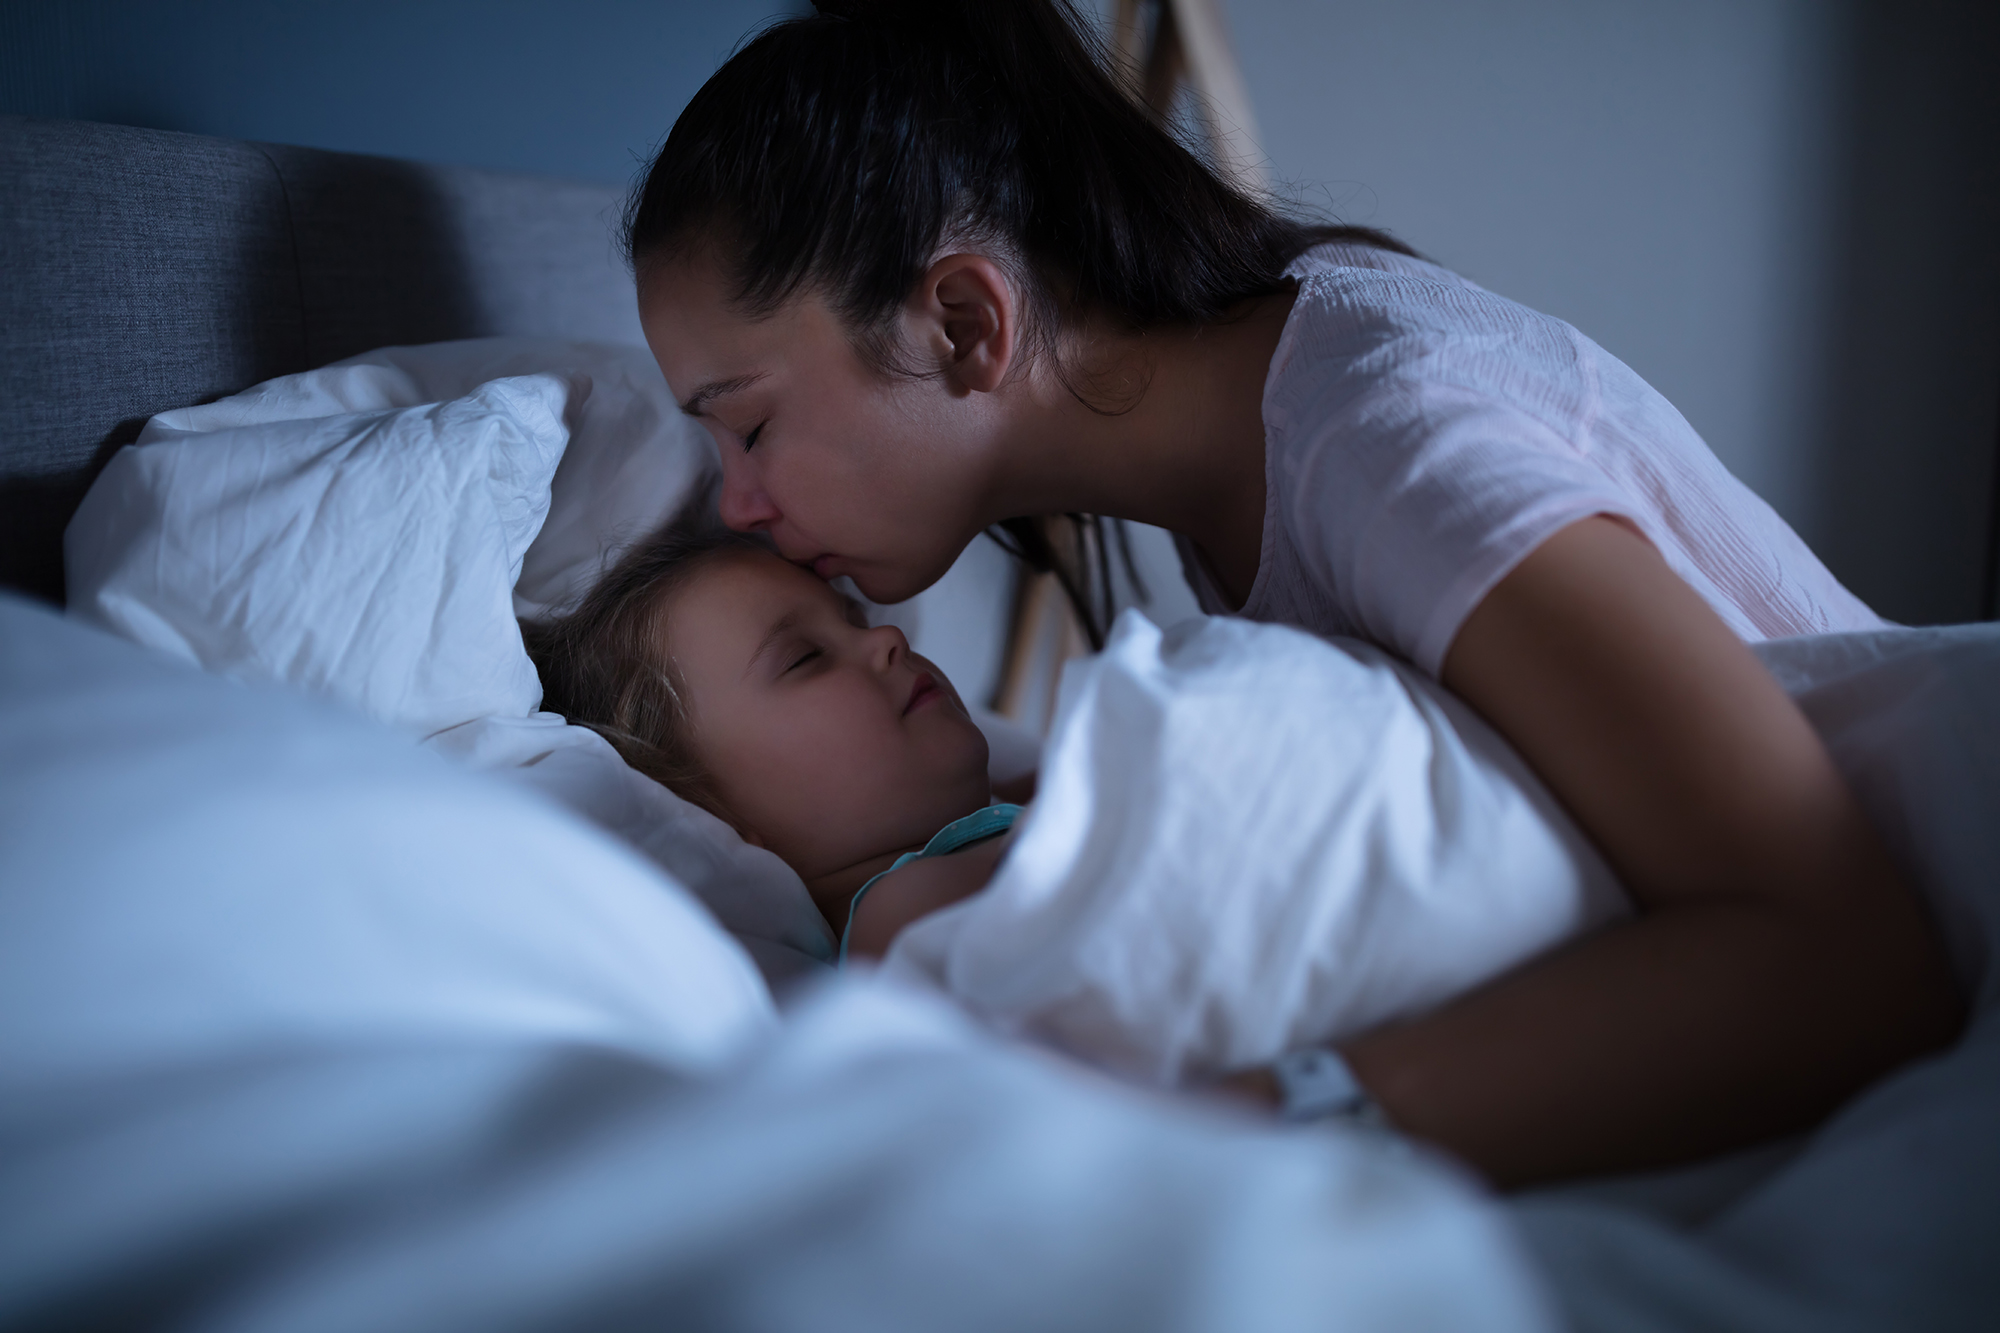 photo of a woman tucking her child into bed and kissing her child's forehead representing bedtime without stress, tears, or tantrums